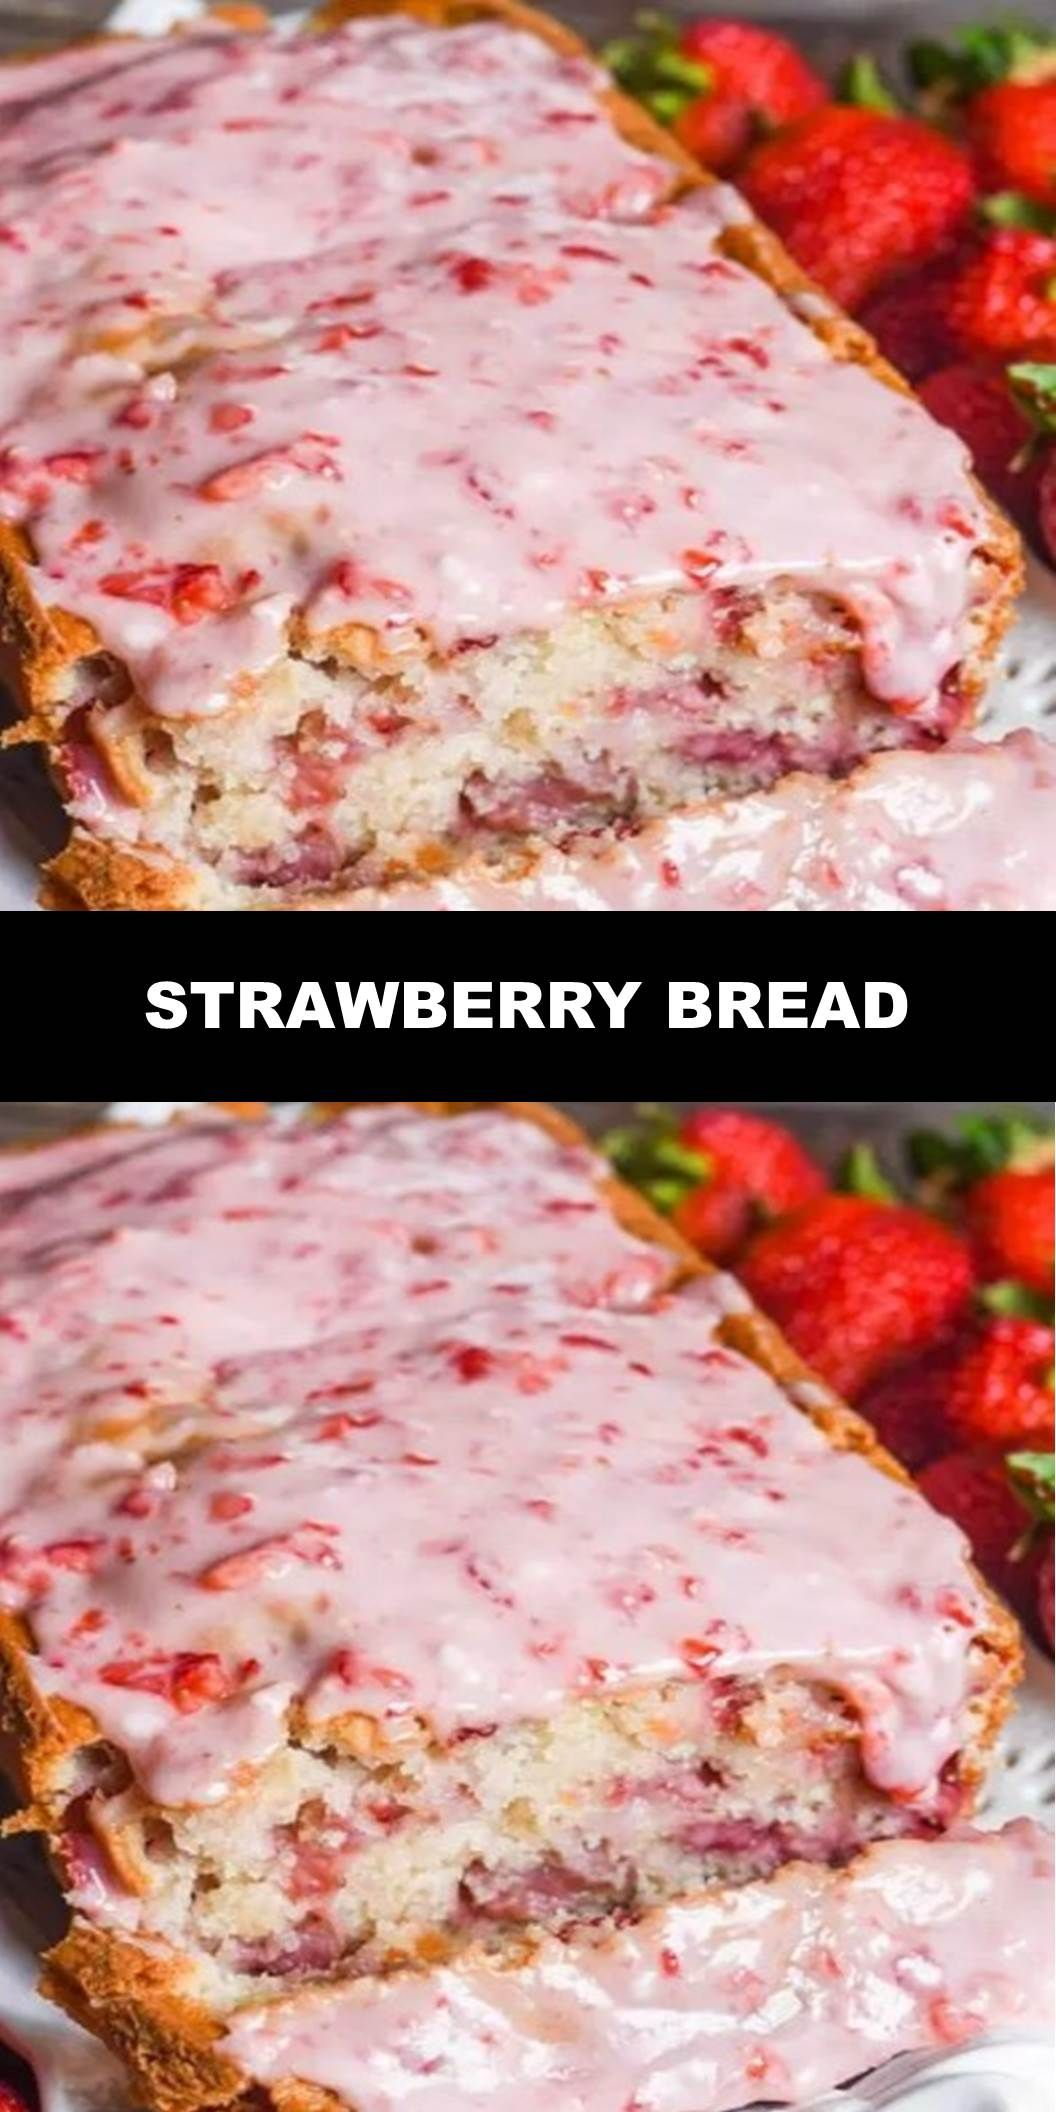 The World's Most Delicious Strawberry Bread Have fresh garden strawberries? Try this fresh strawberry bread with melt-in-your-mouth strawberry glaze. This quick bread recipe comes together in just 10 minutes. If you love fruit breads, you'll also love our cherry bread!